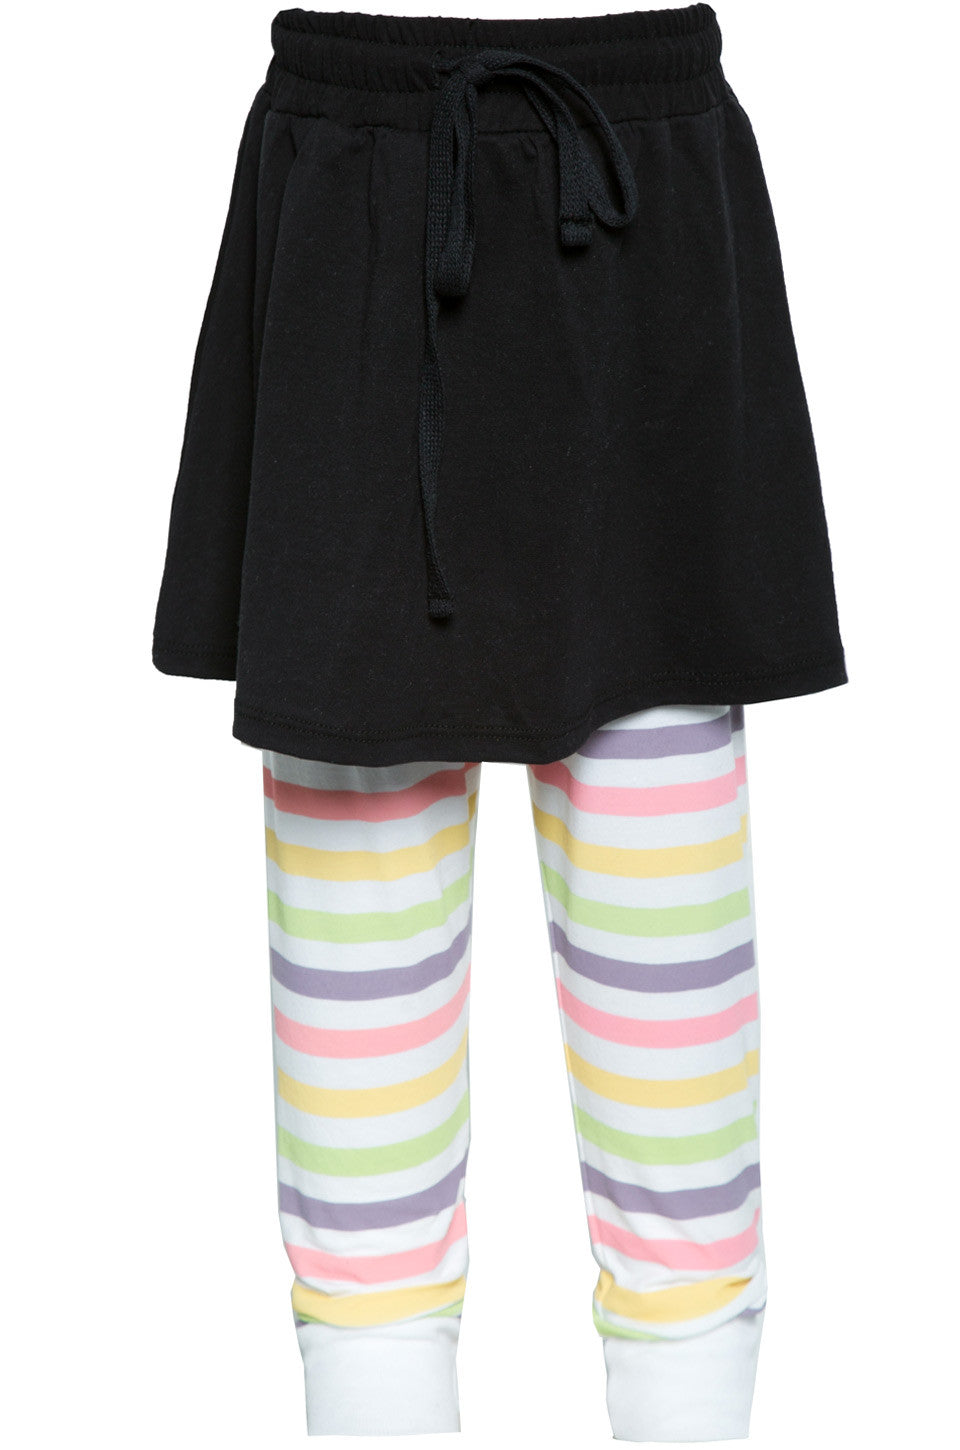 Lauren Moshi Kids Women's Speedy Mini Multi Stripes Skirt w/Legging